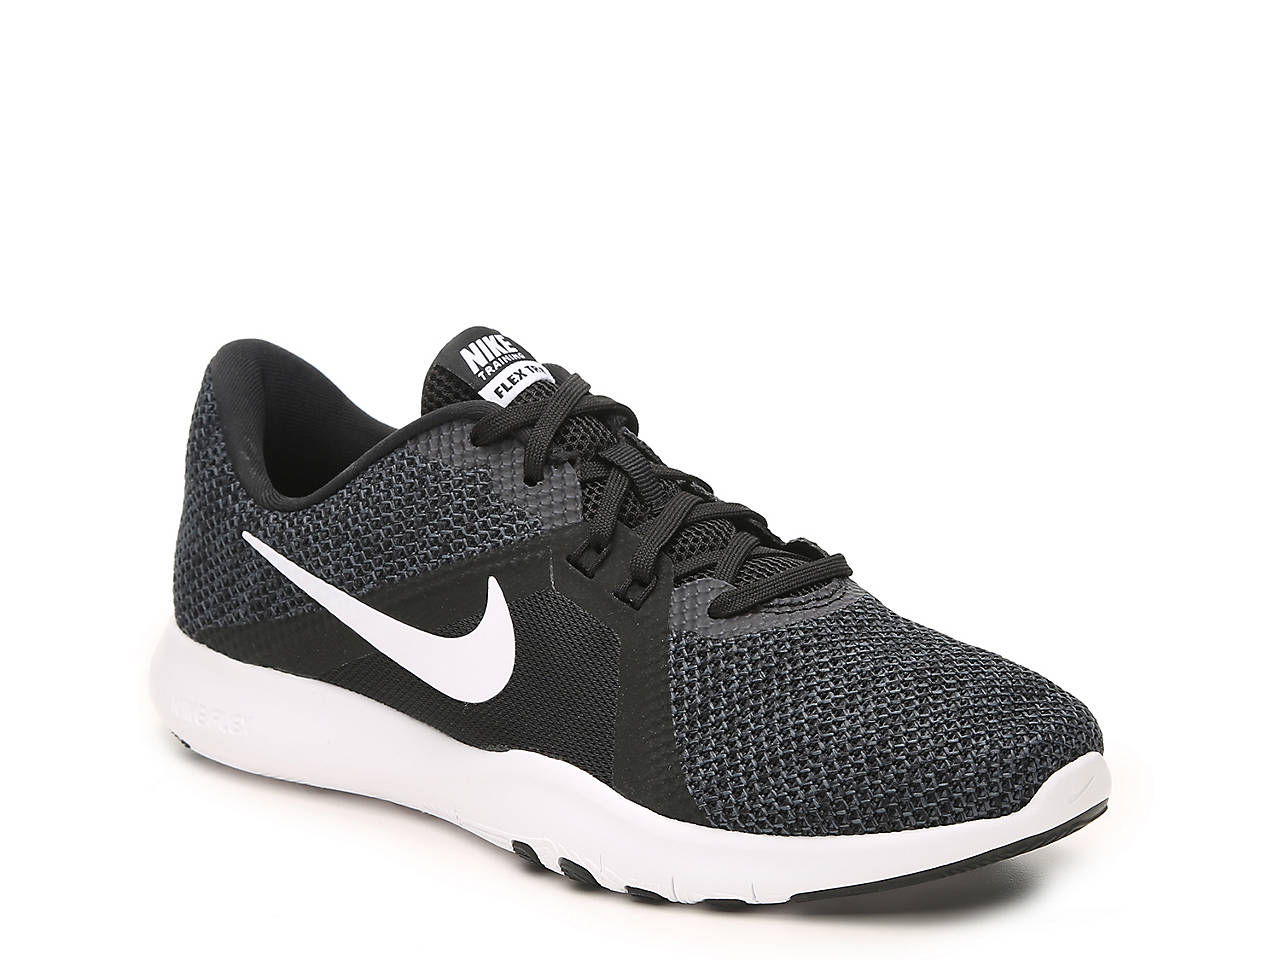 63f3e94ad1c Nike Flex TR 8 Lightweight Training Shoe - Women s Wide Women s ...